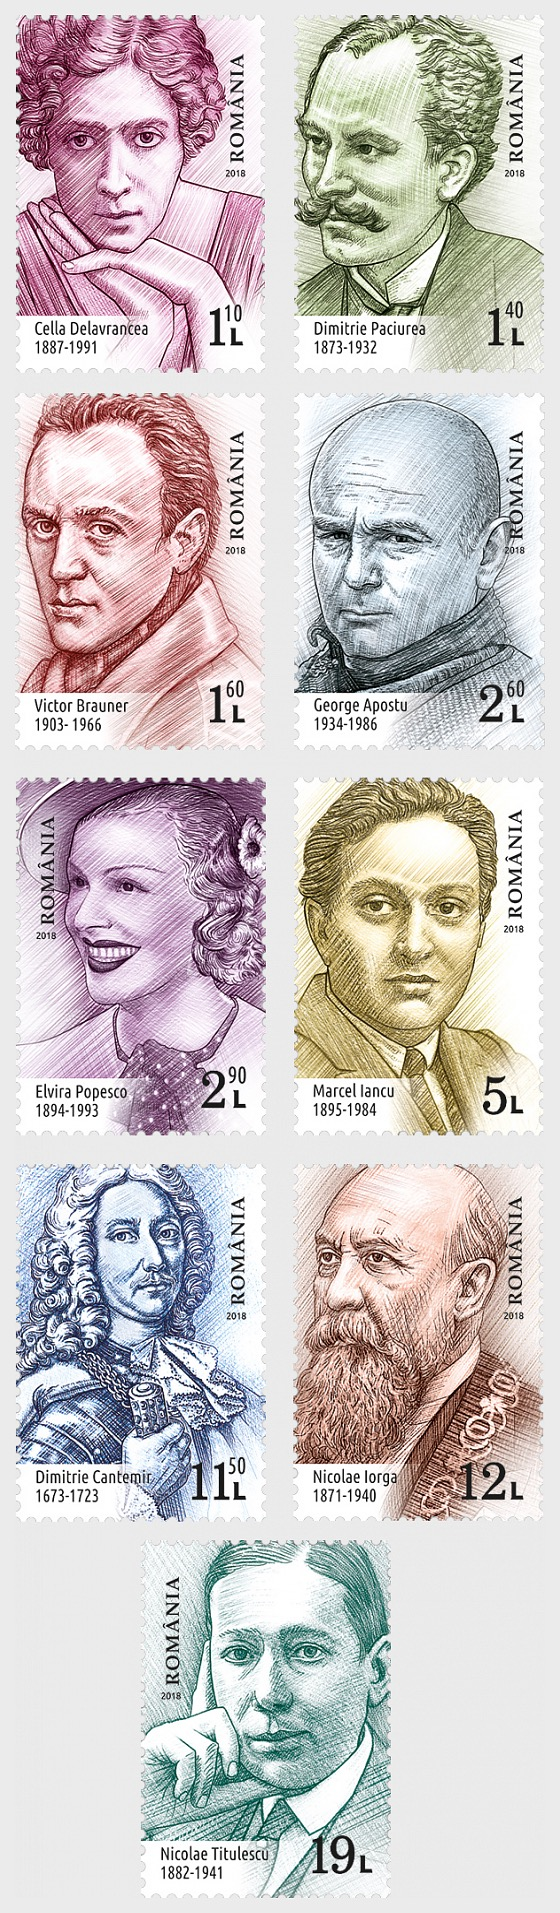 Famous Romanians II - Set